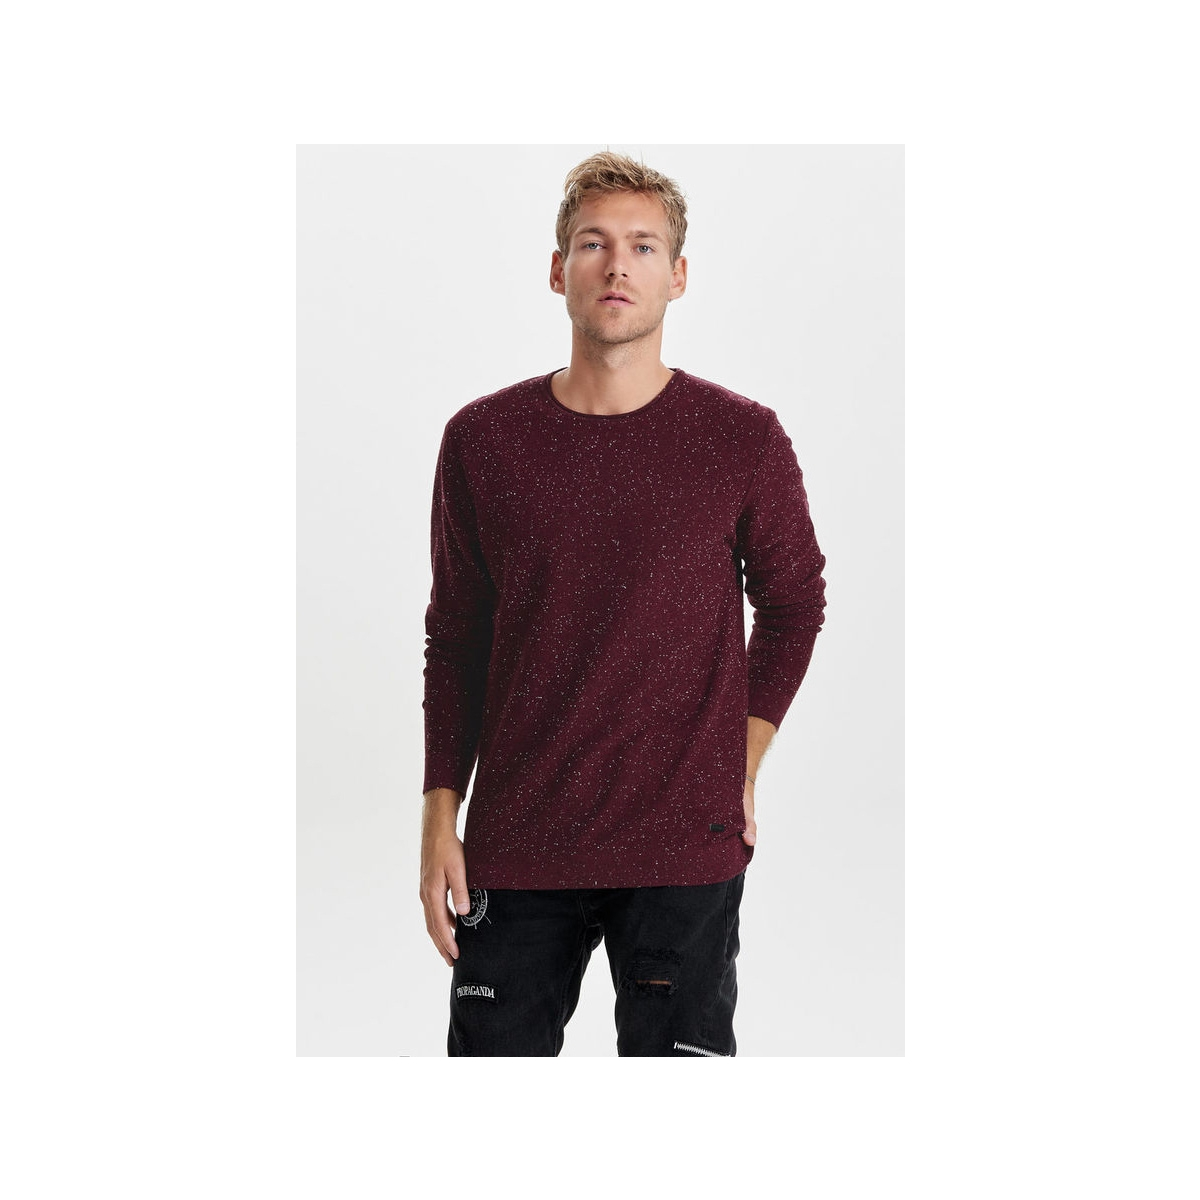 onsdian naps crew neck knit noos 22003869 only & sons trui fudge